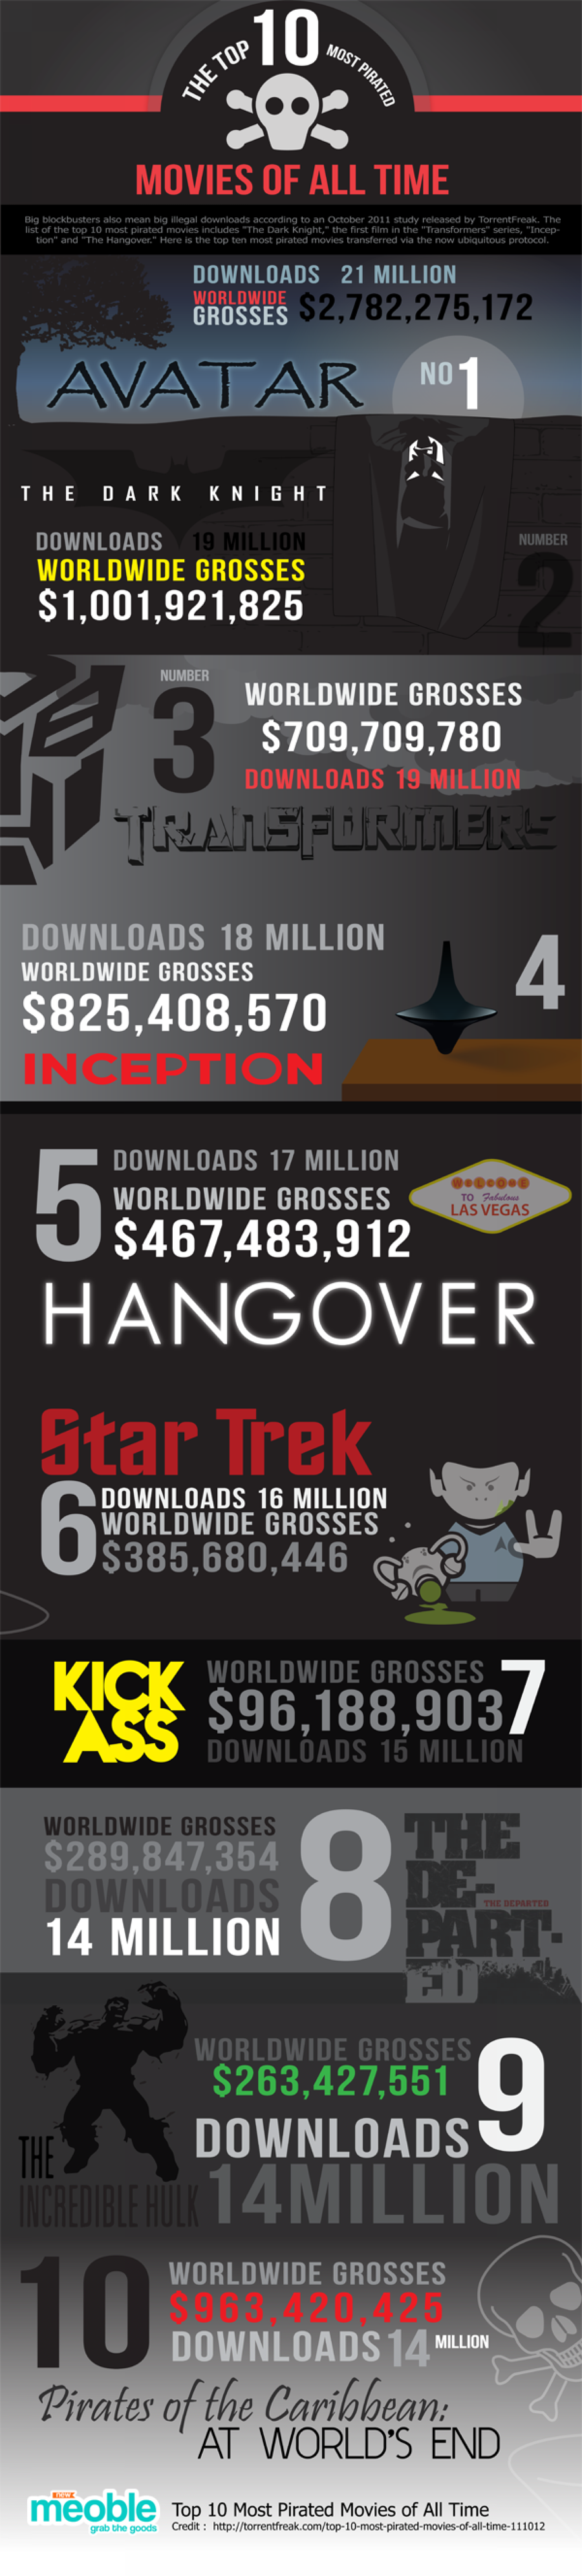 Top 10 Most Pirated Movies of All Time Infographic